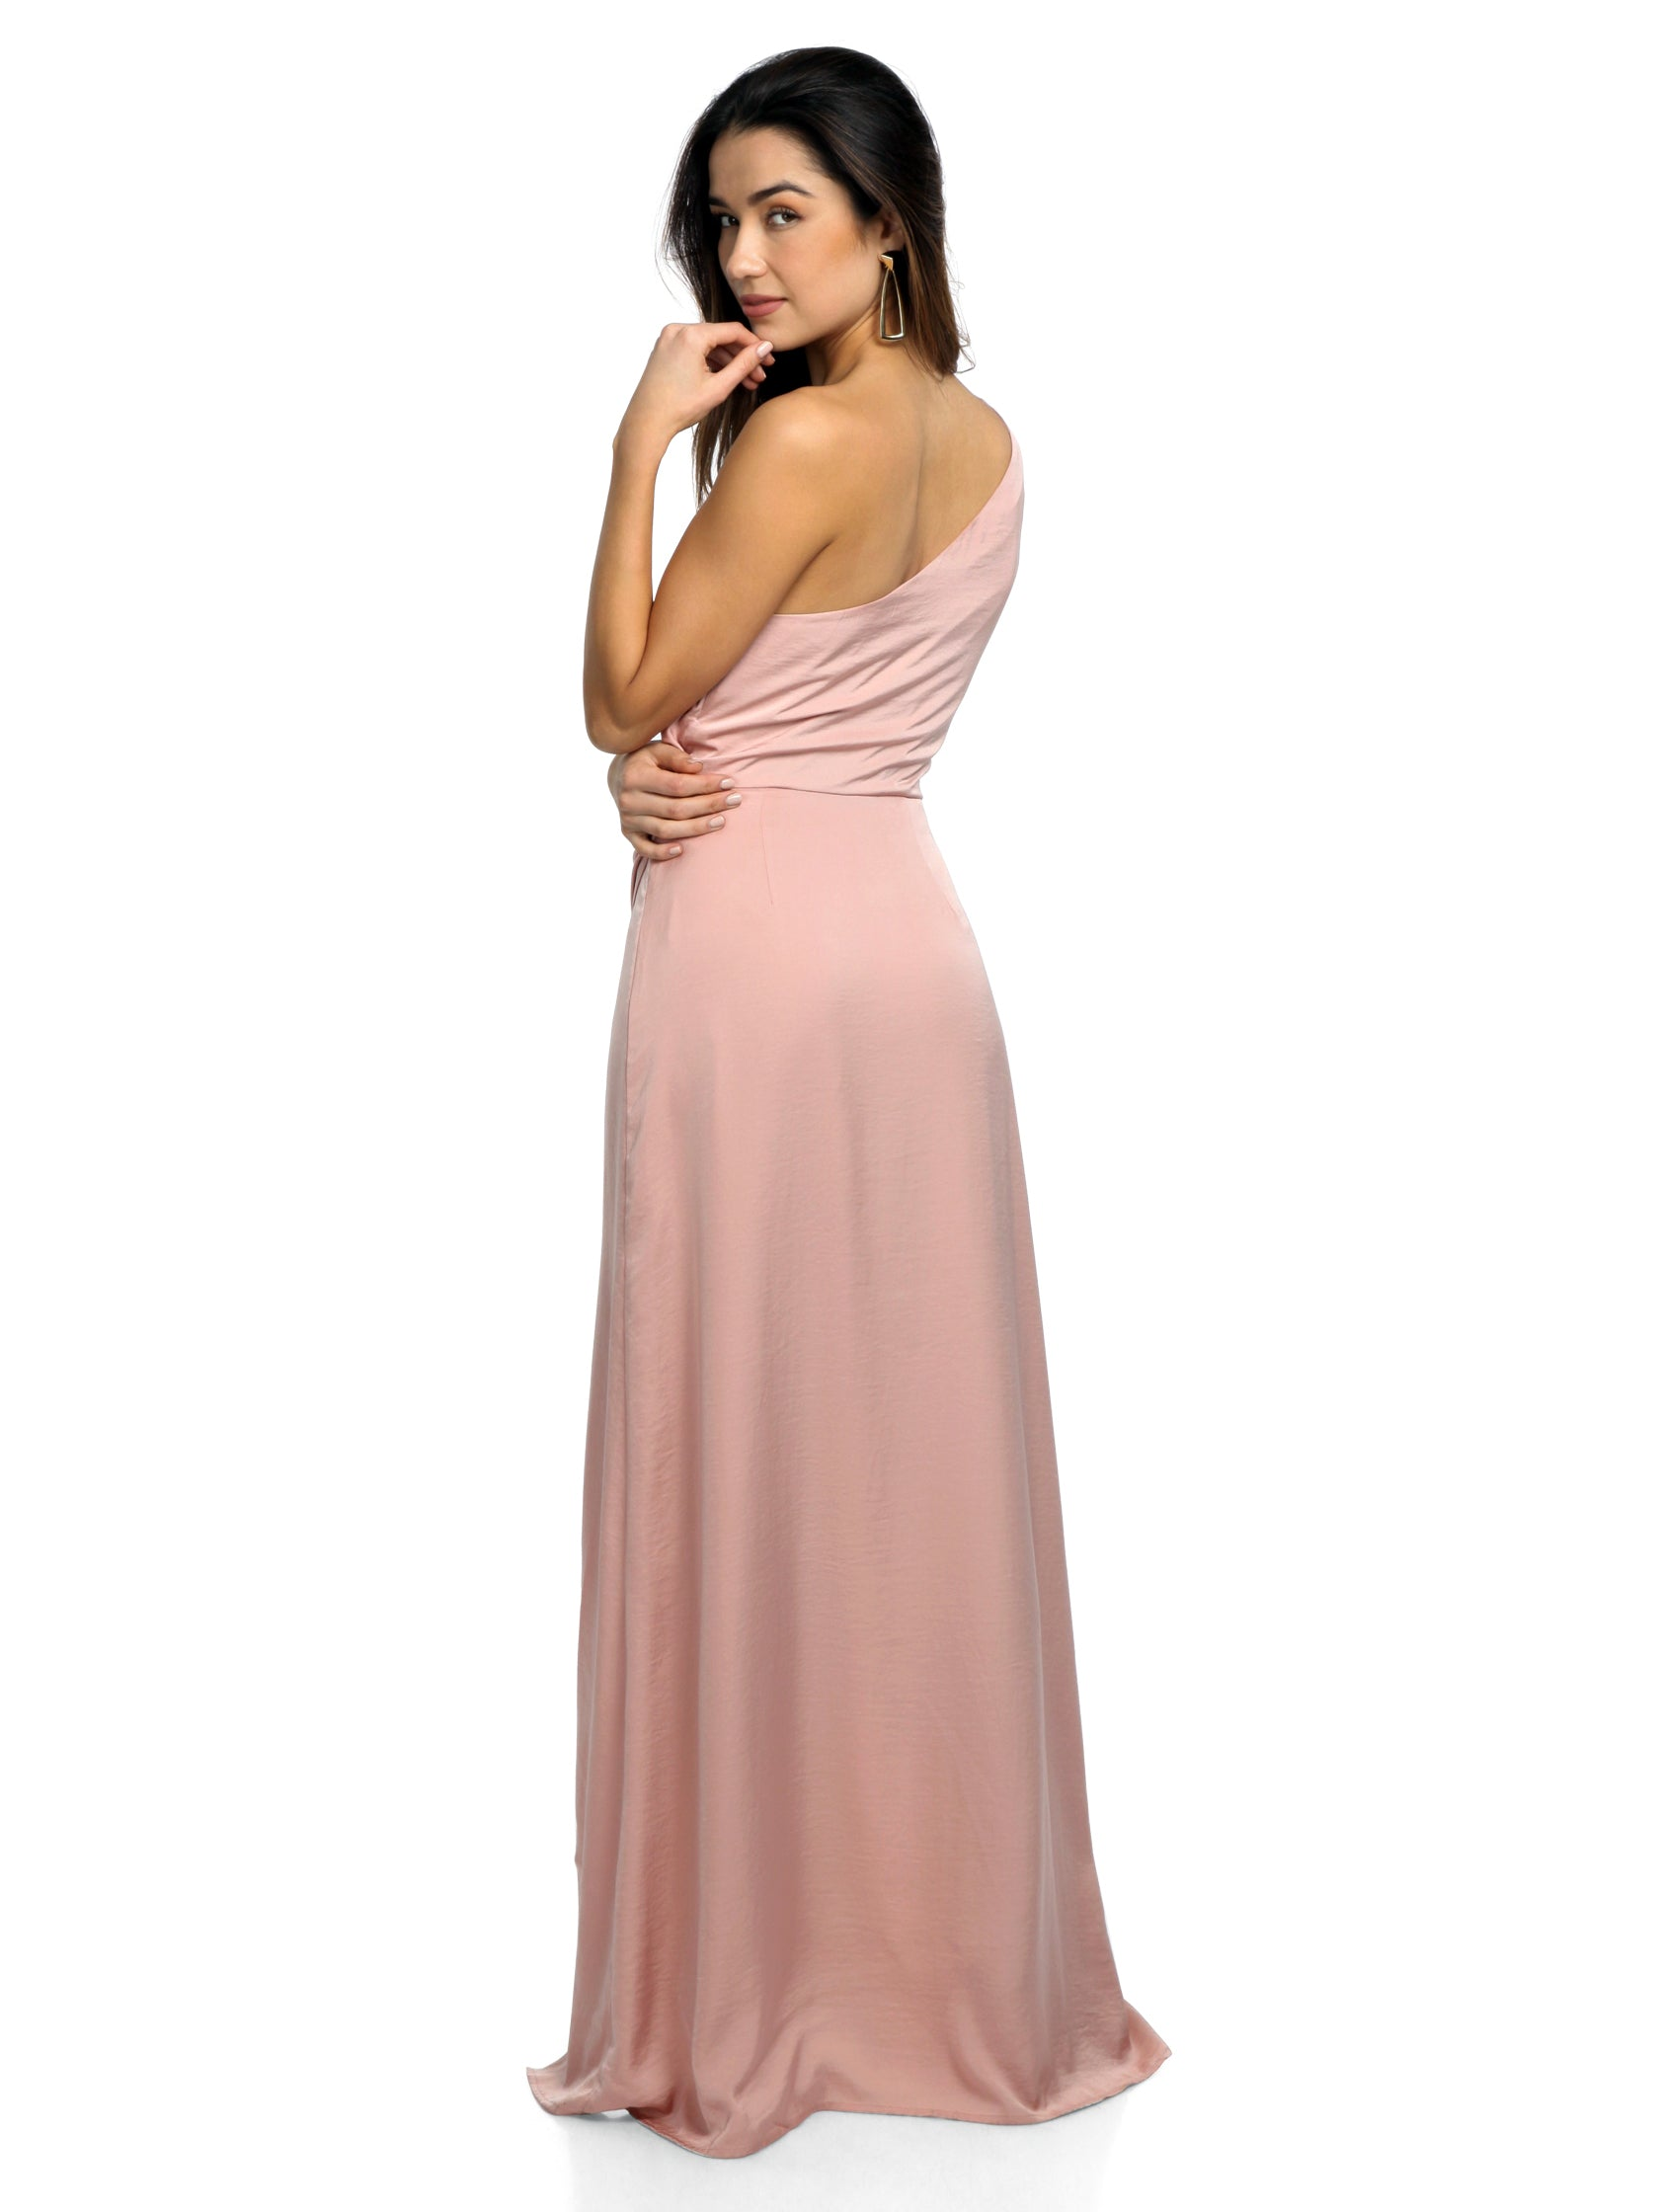 STYLESTALKER Rental | Jordana Maxi Dress - FashionPass